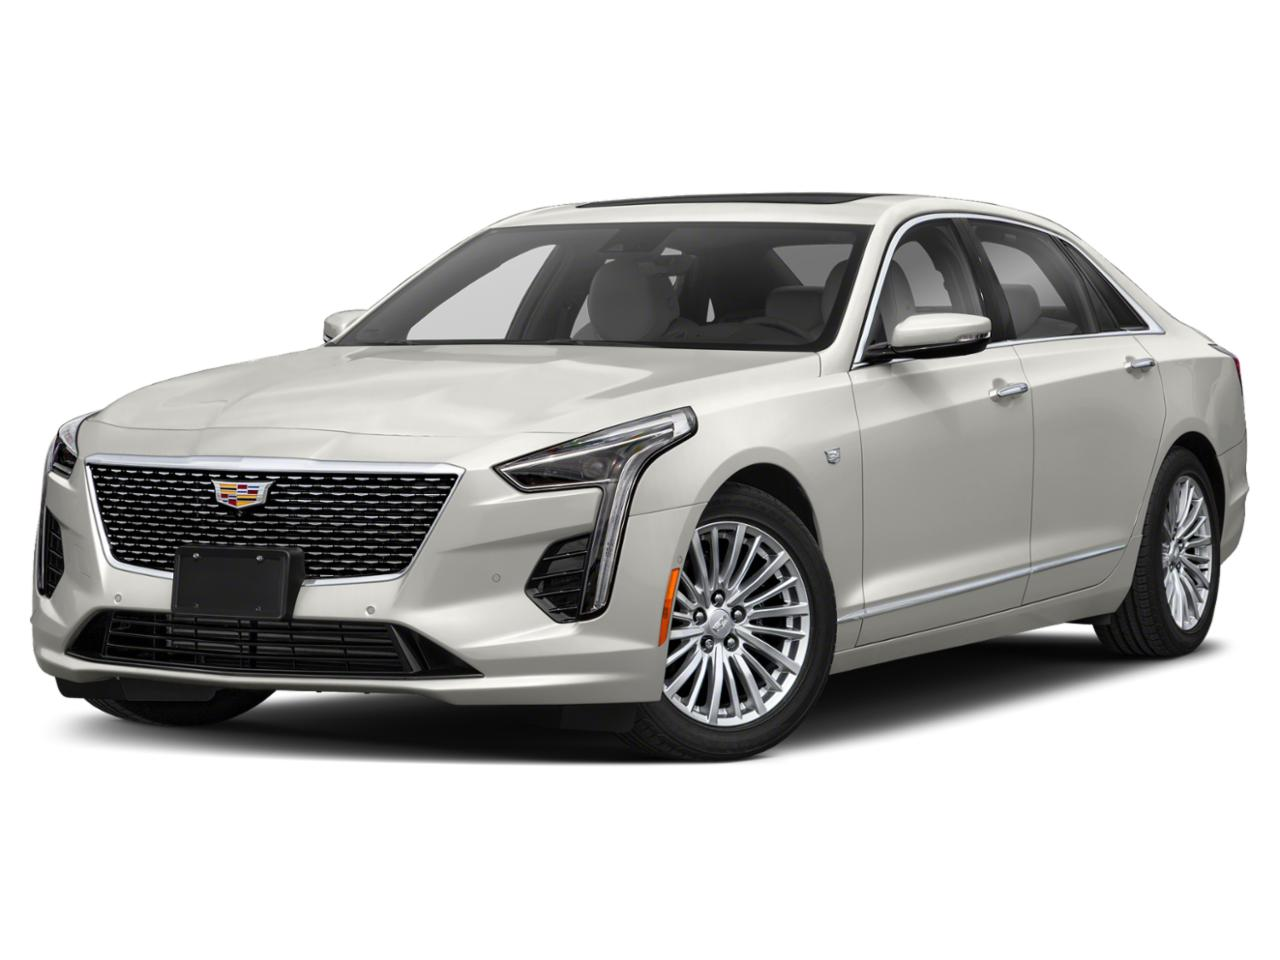 2020 Cadillac CT6 Vehicle Photo in Dallas, TX 75209